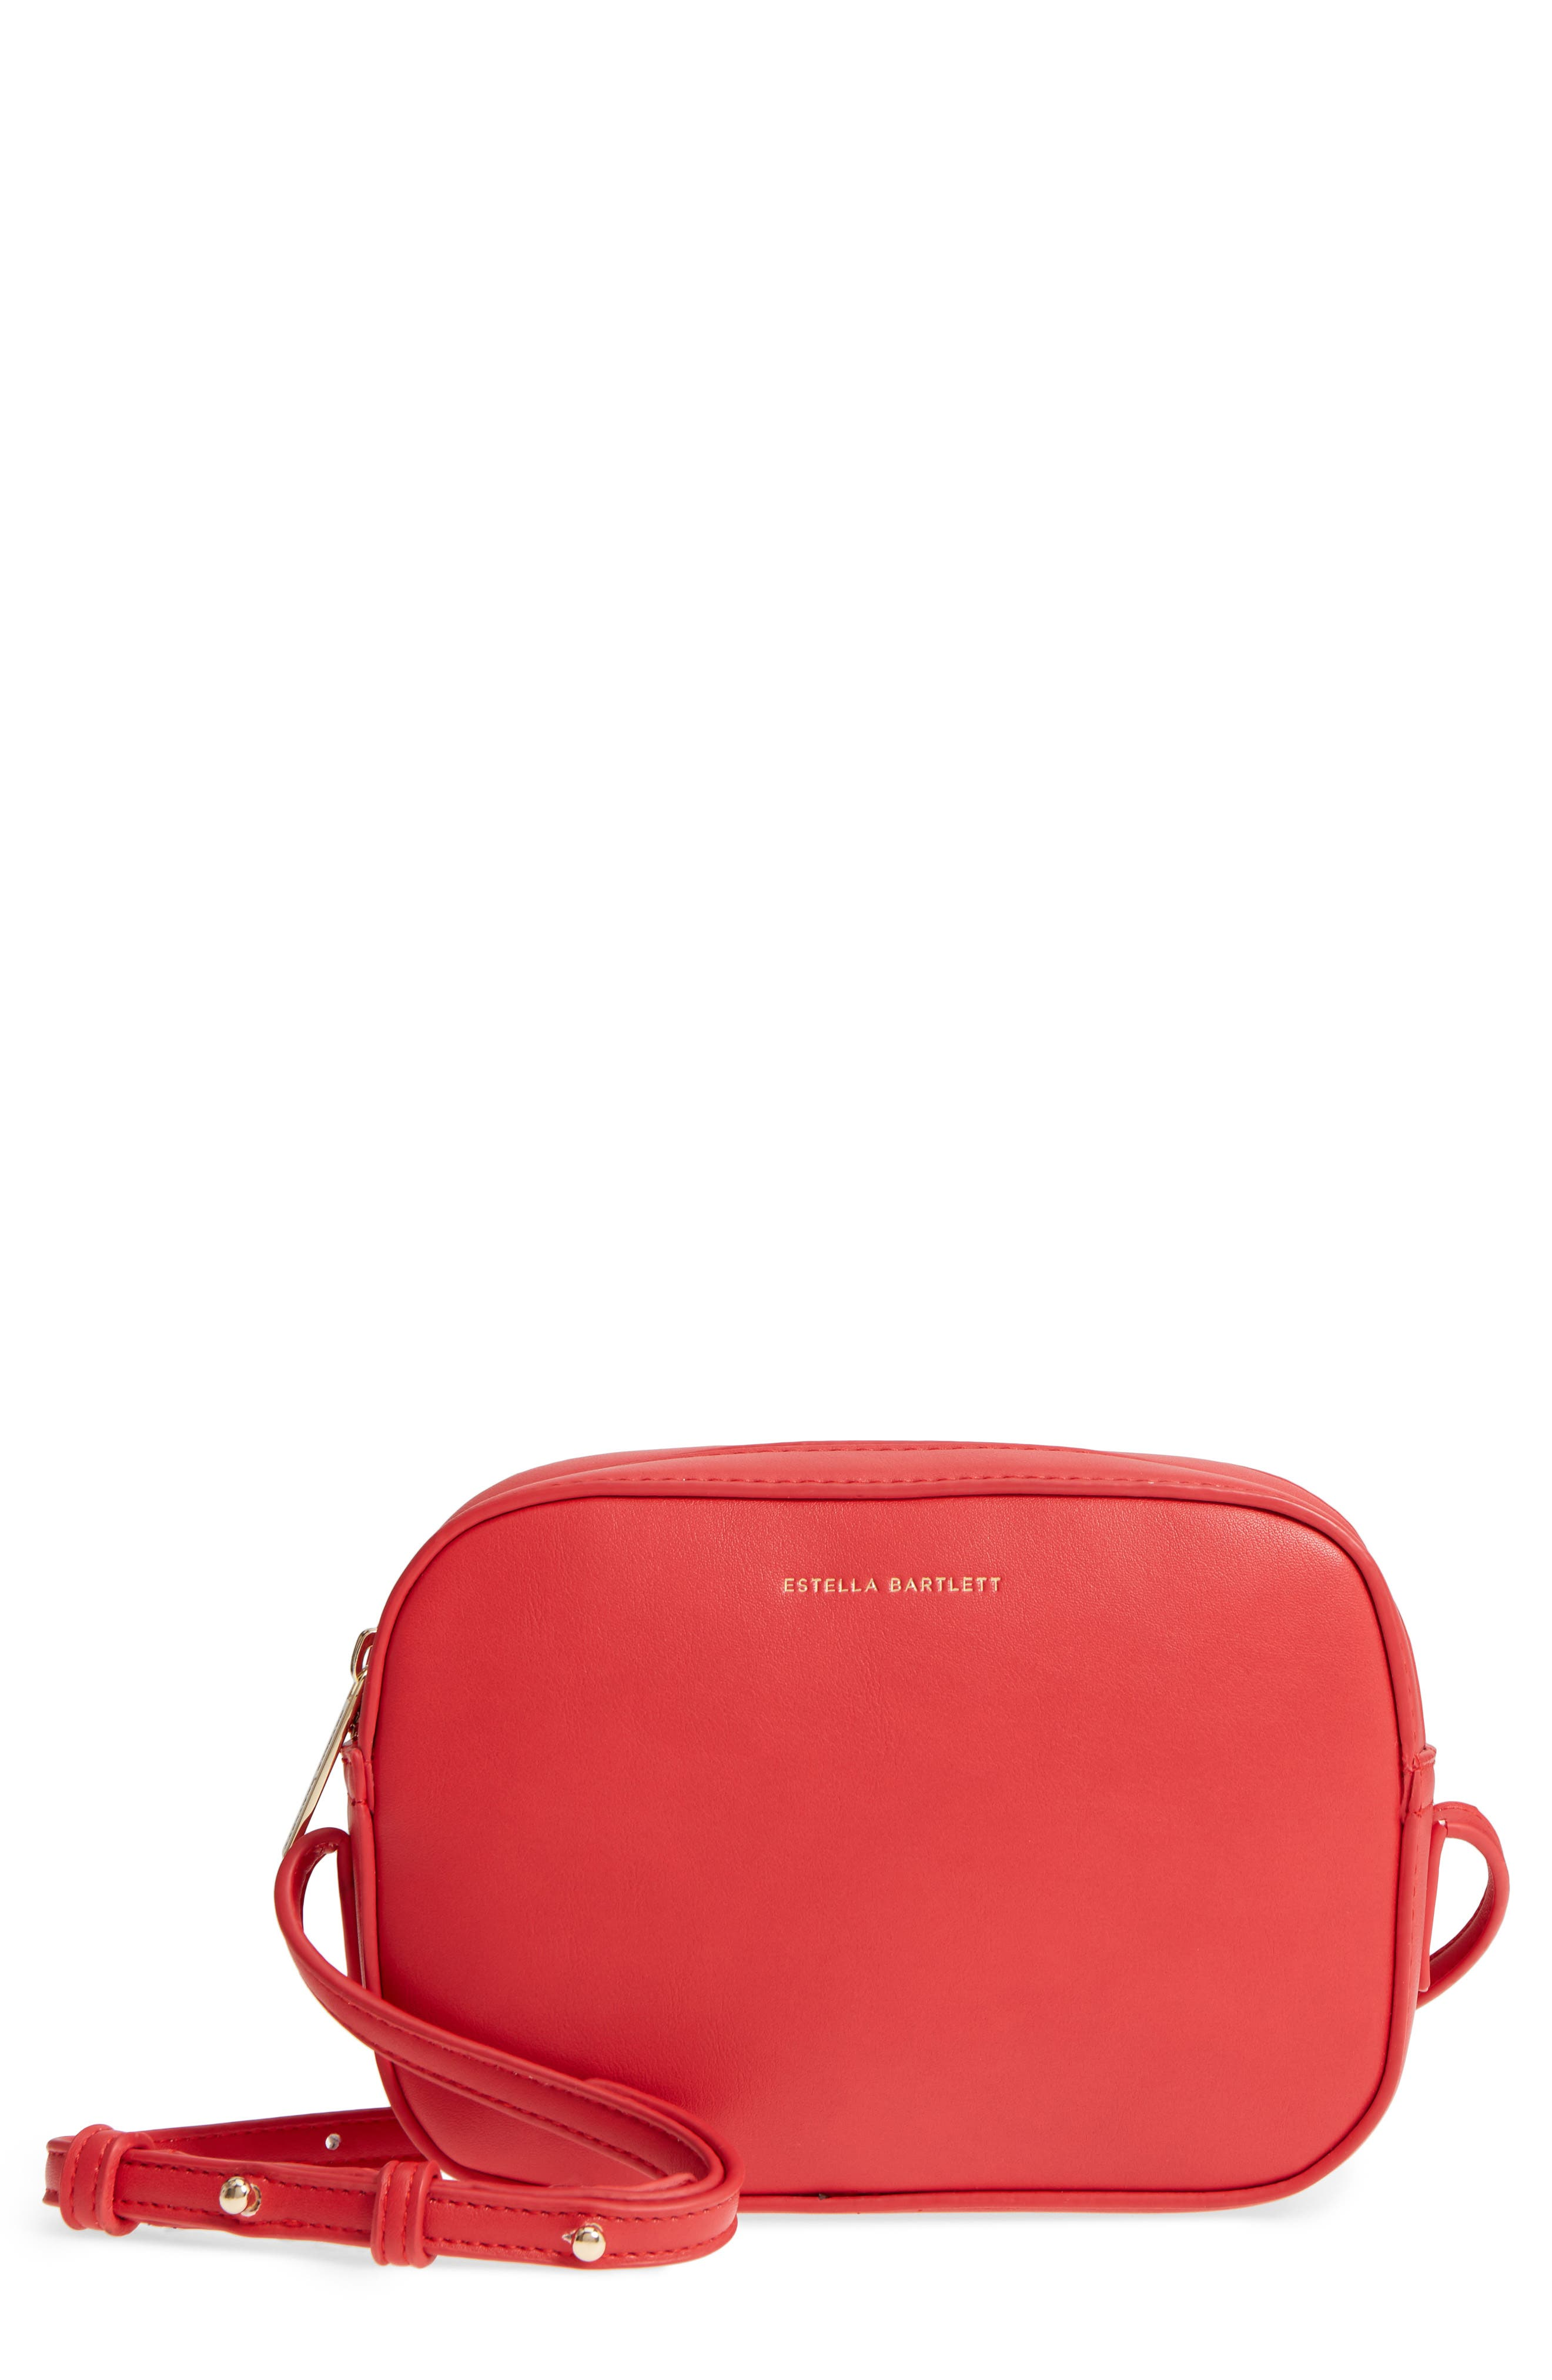 Faux Leather Box Bag,                             Main thumbnail 1, color,                             Red